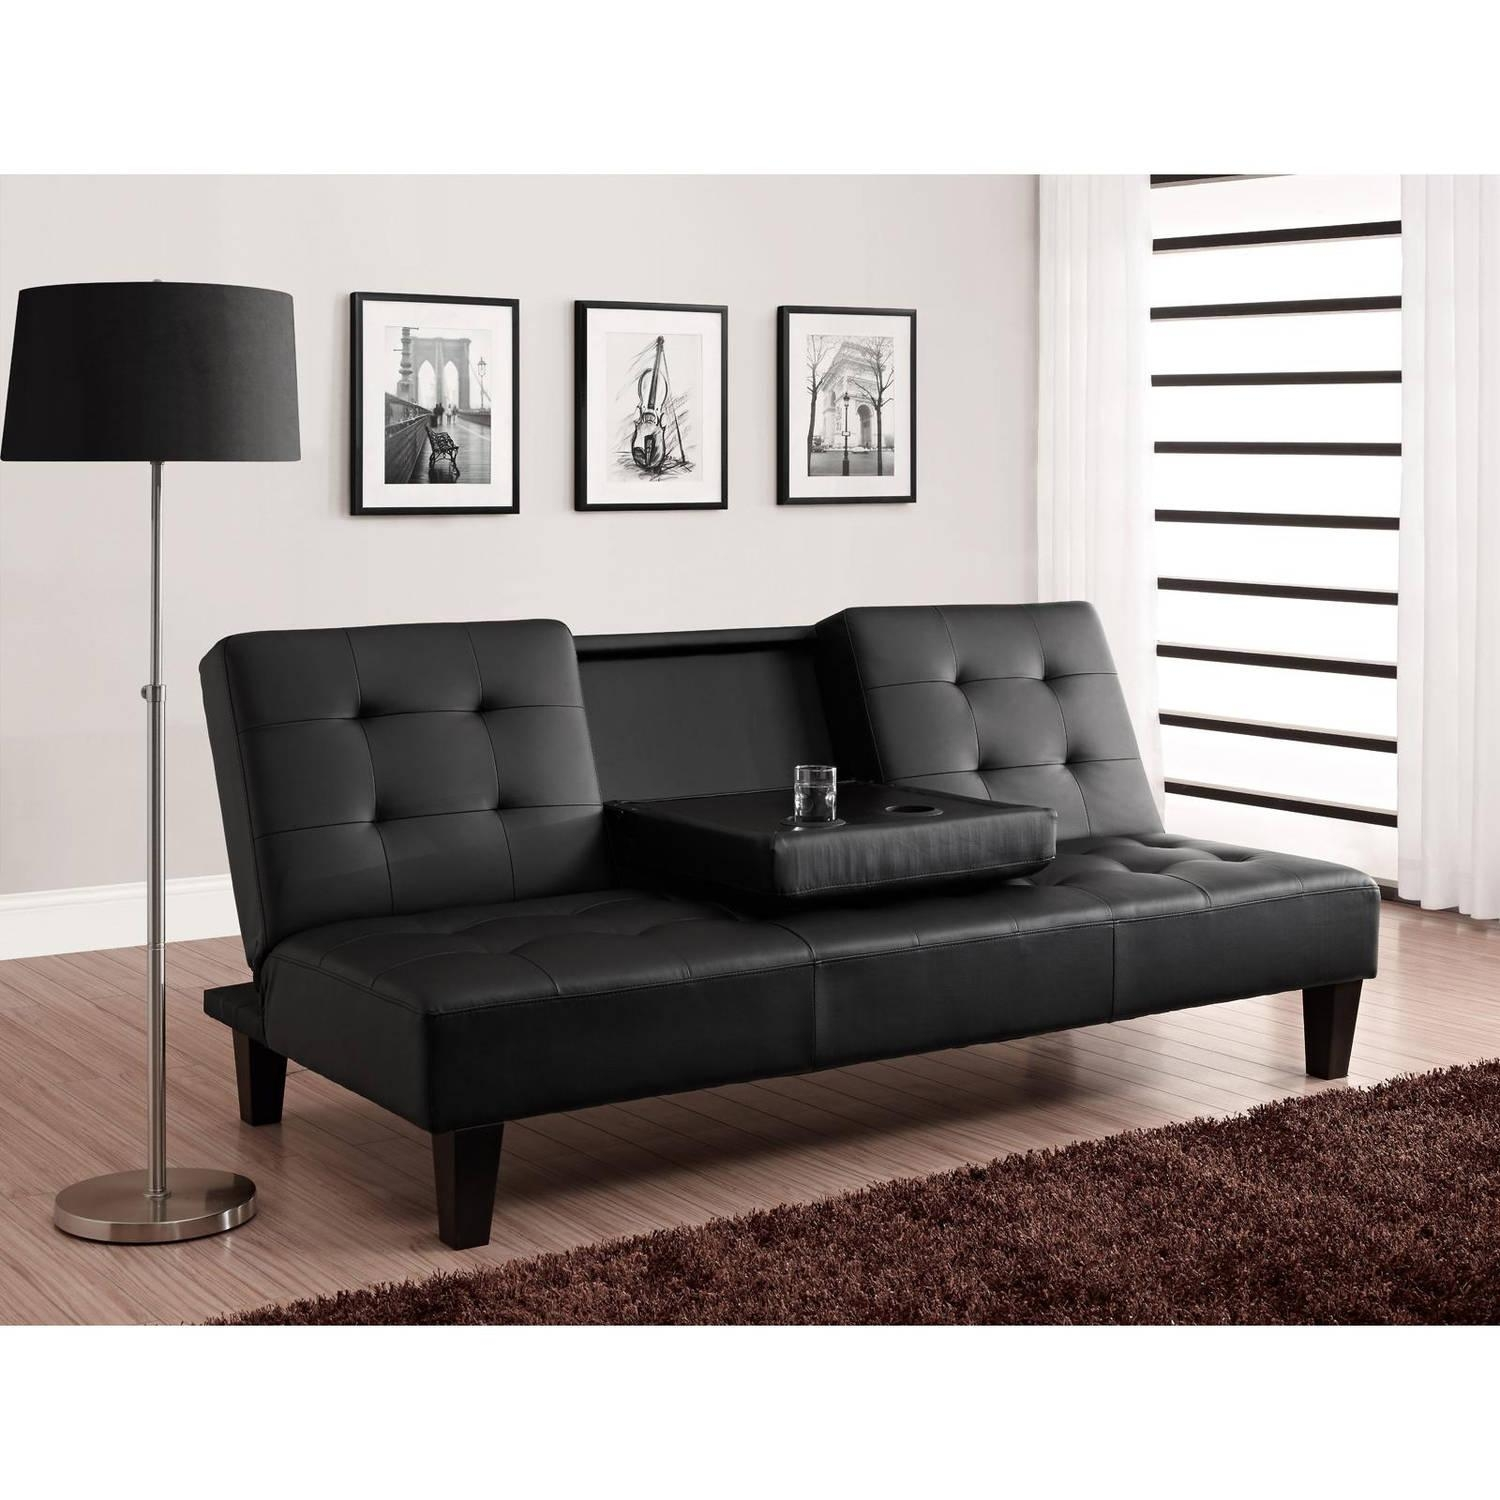 Julia Cupholder Convertible Futon, Multiple Colors – Walmart With Regard To Small Black Futon Sofa Beds (Image 9 of 20)